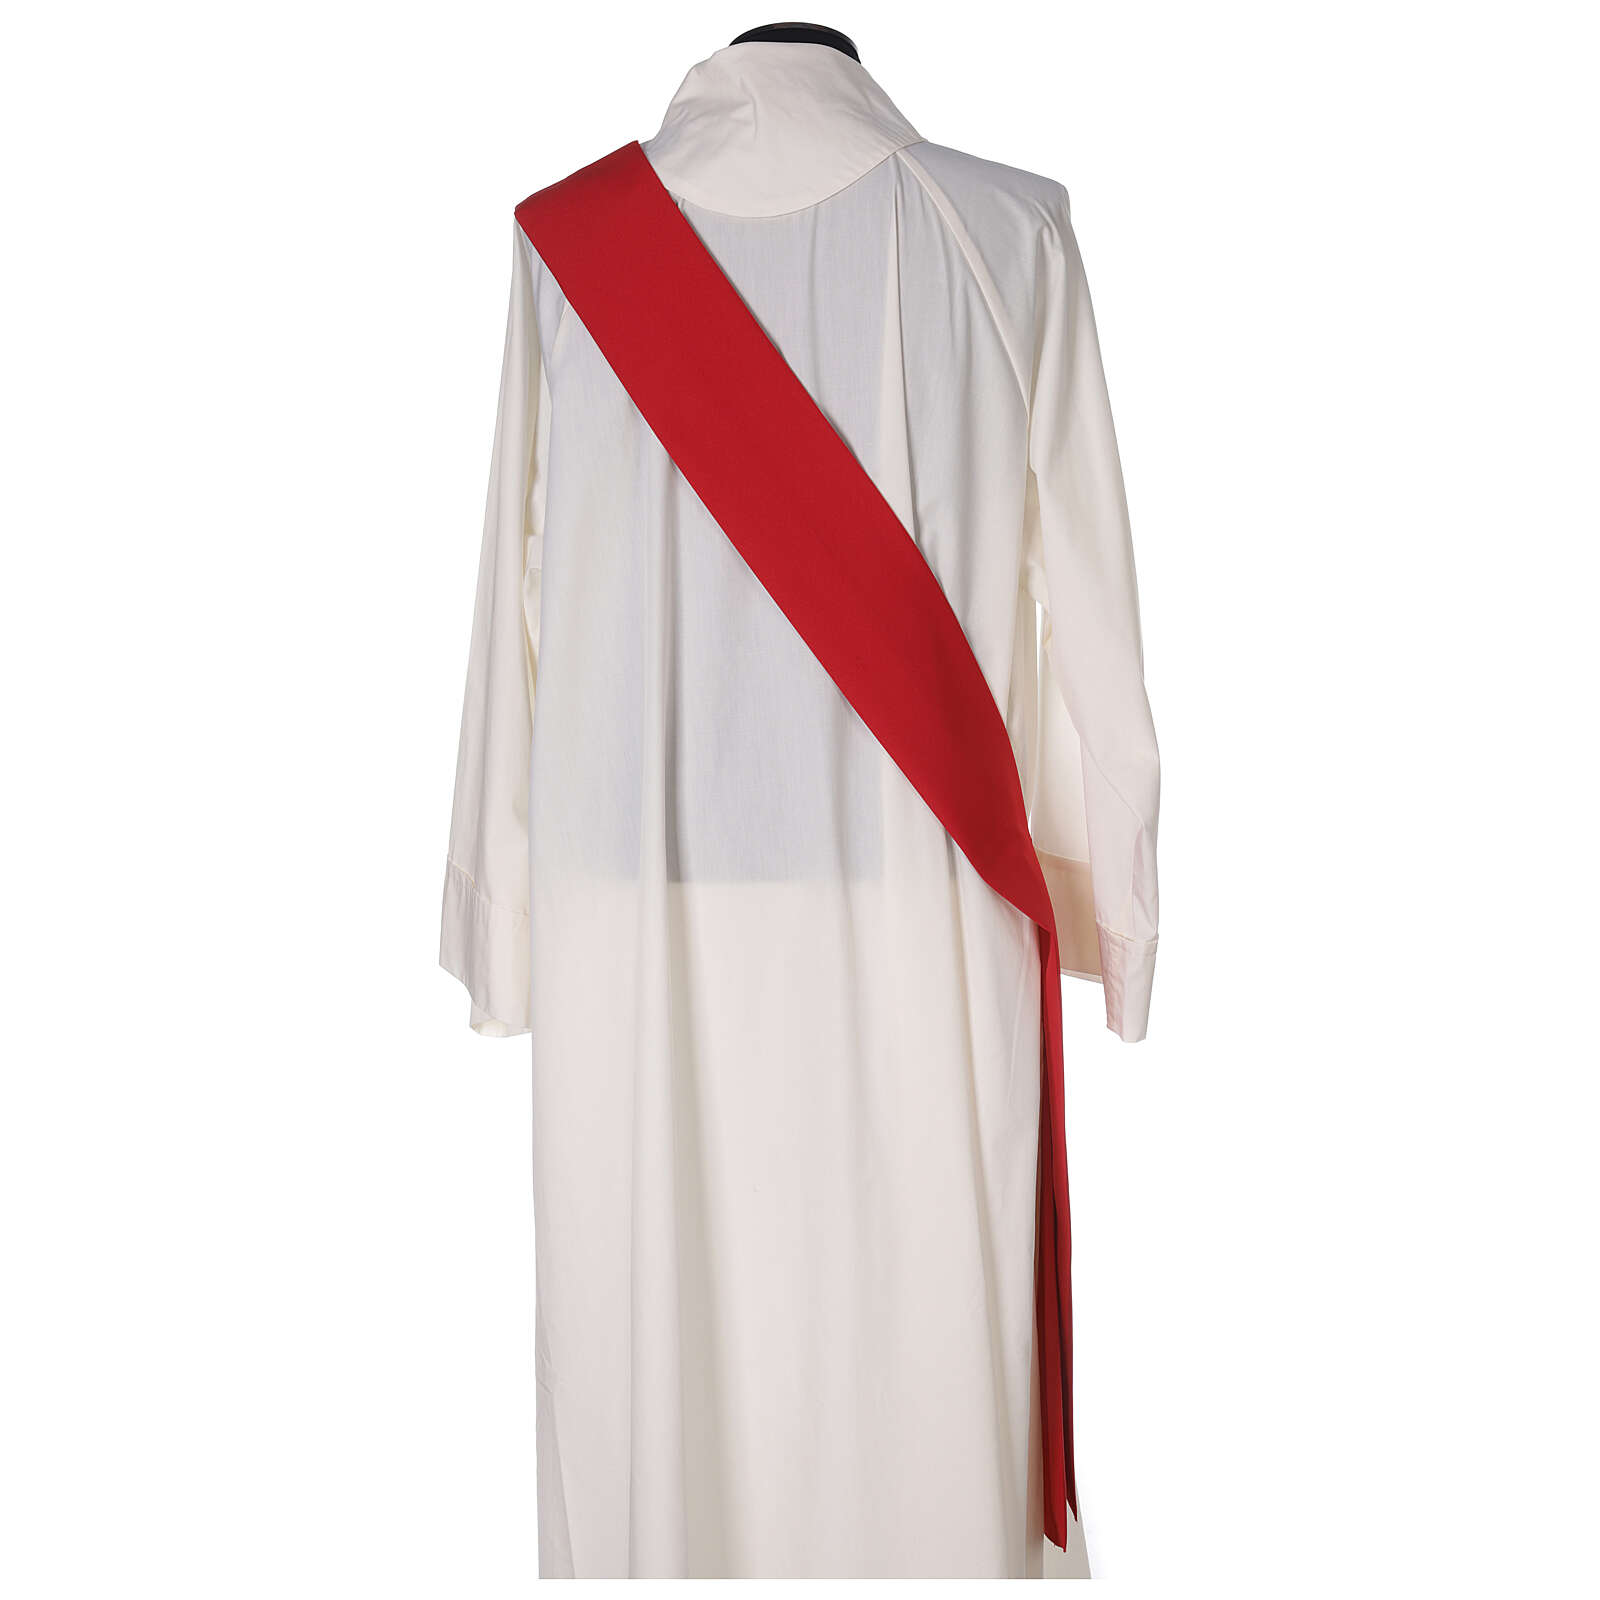 Dalmatic in polyester with gallon applied on the front, Vatican fabric 4